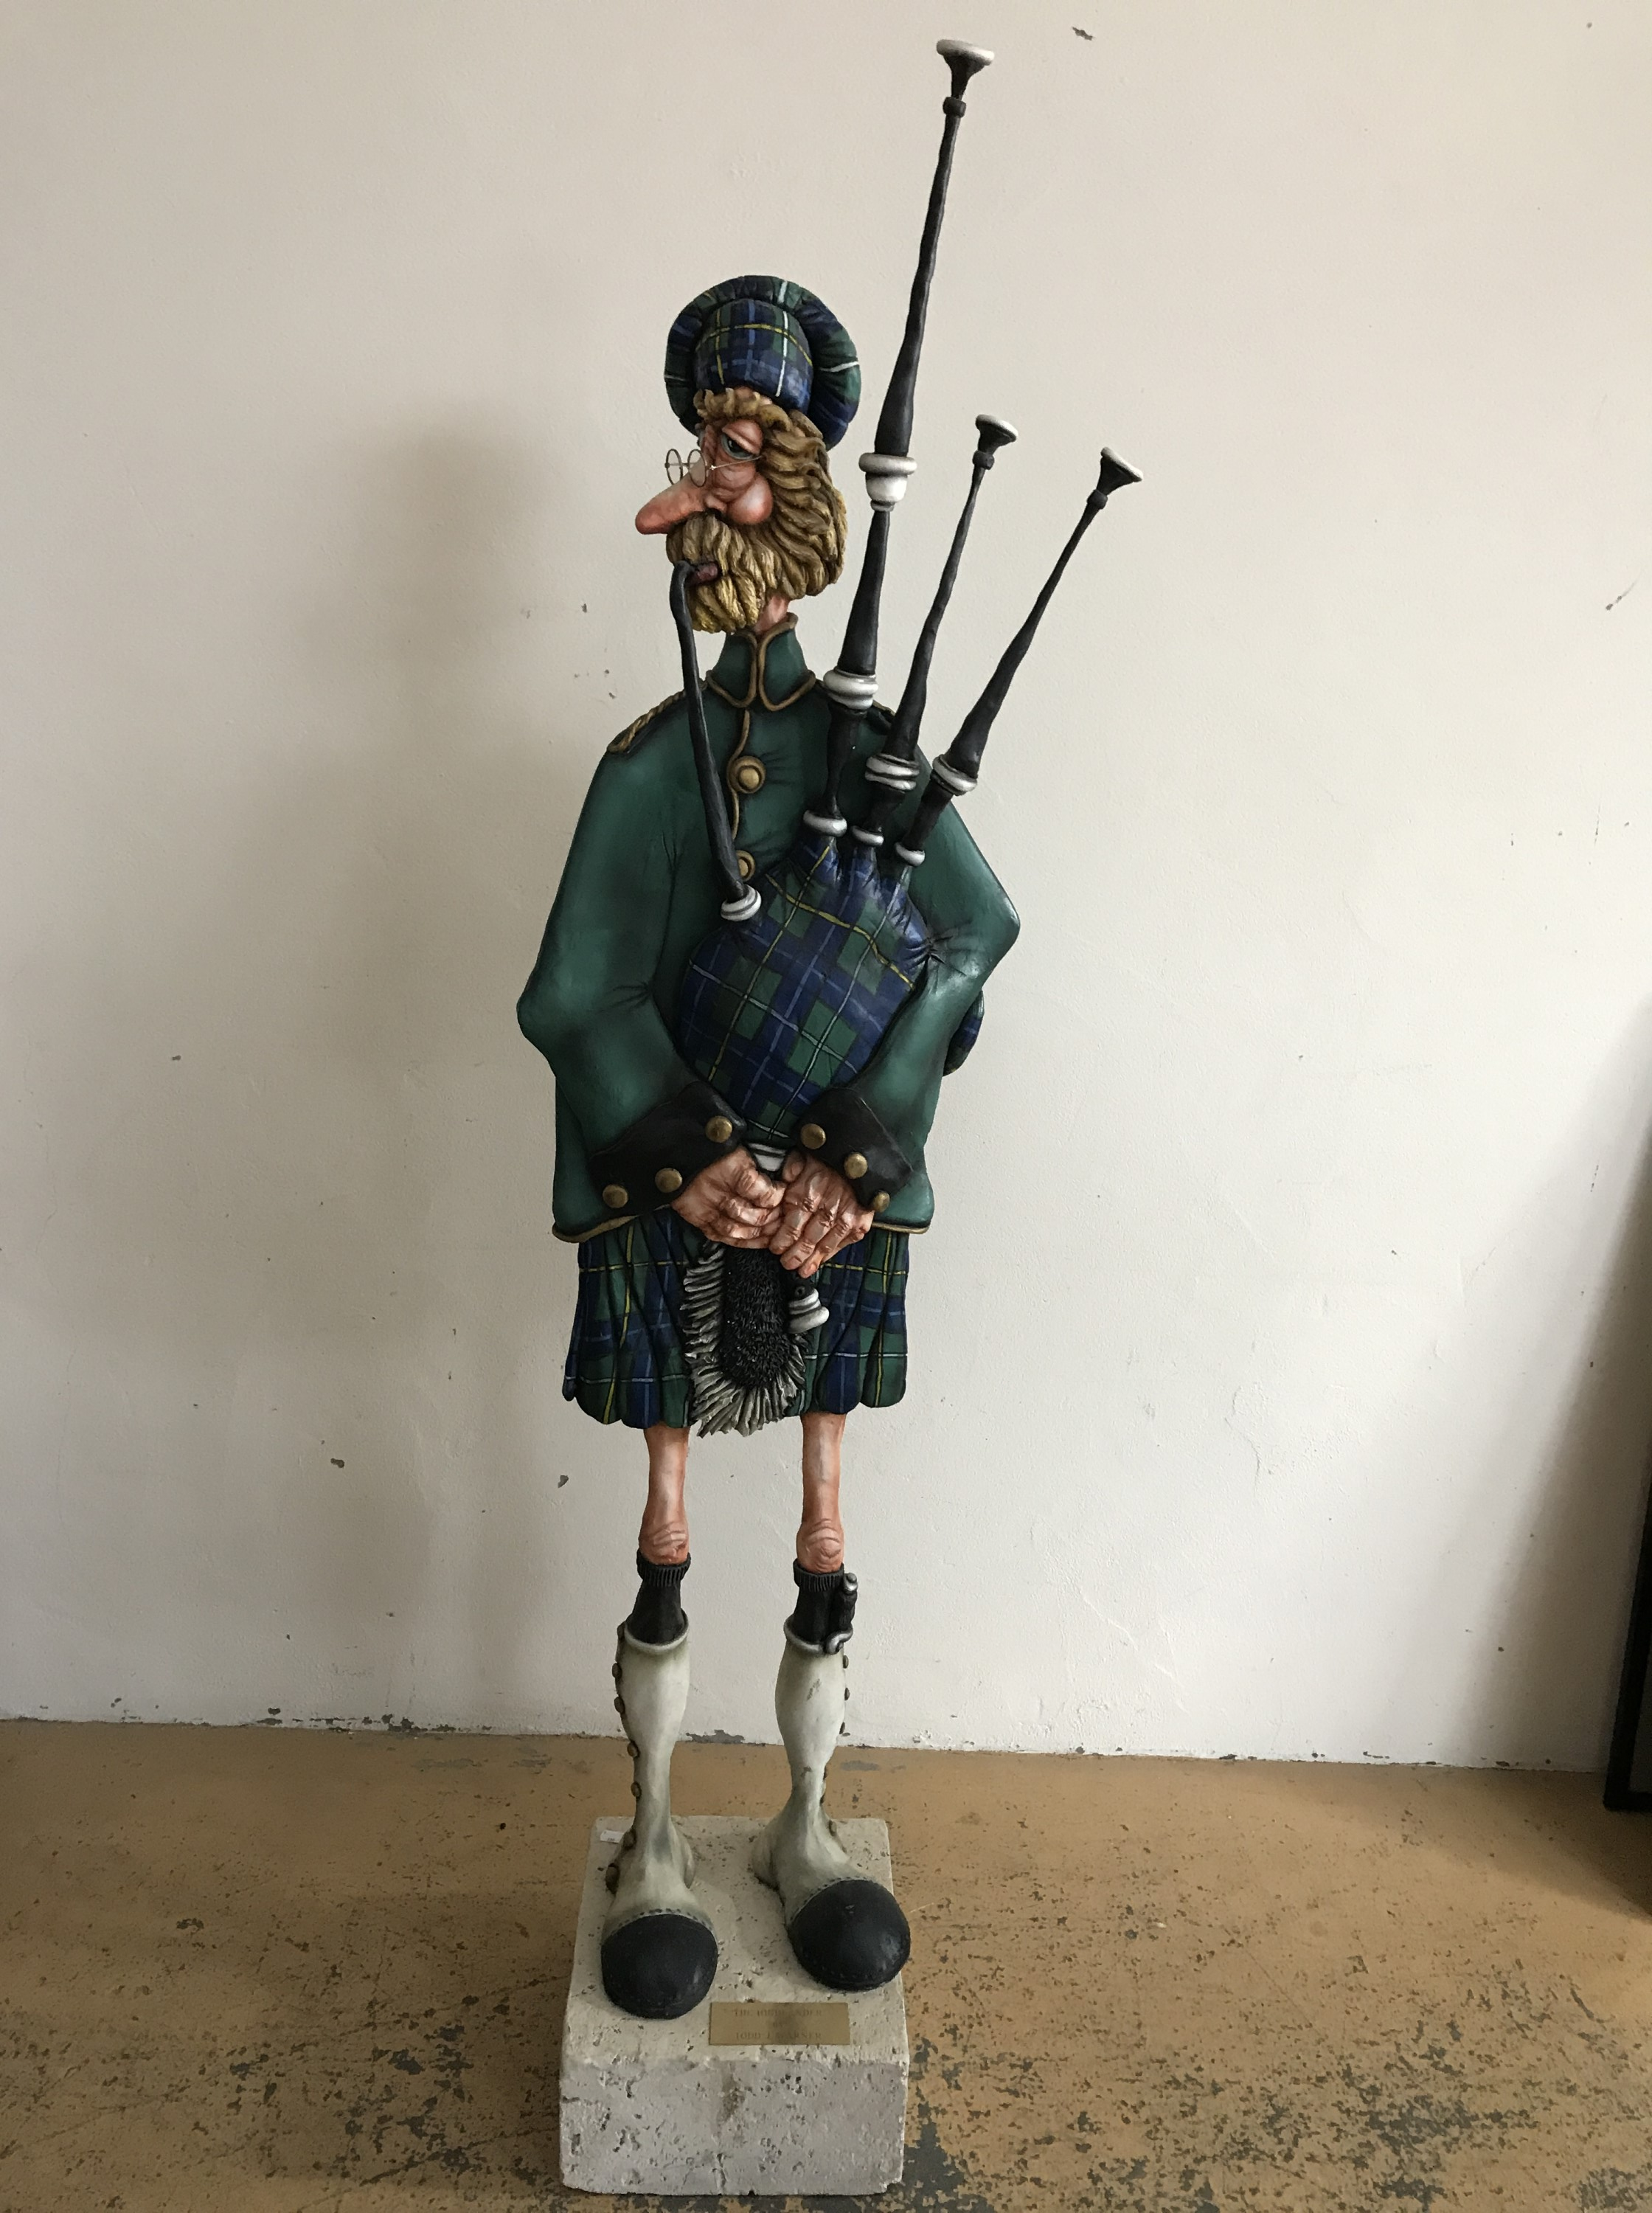 Lot 7A - Todd J. Warner (American, b.1948) A contemporary sculpture of a piper, modelled in an upright and